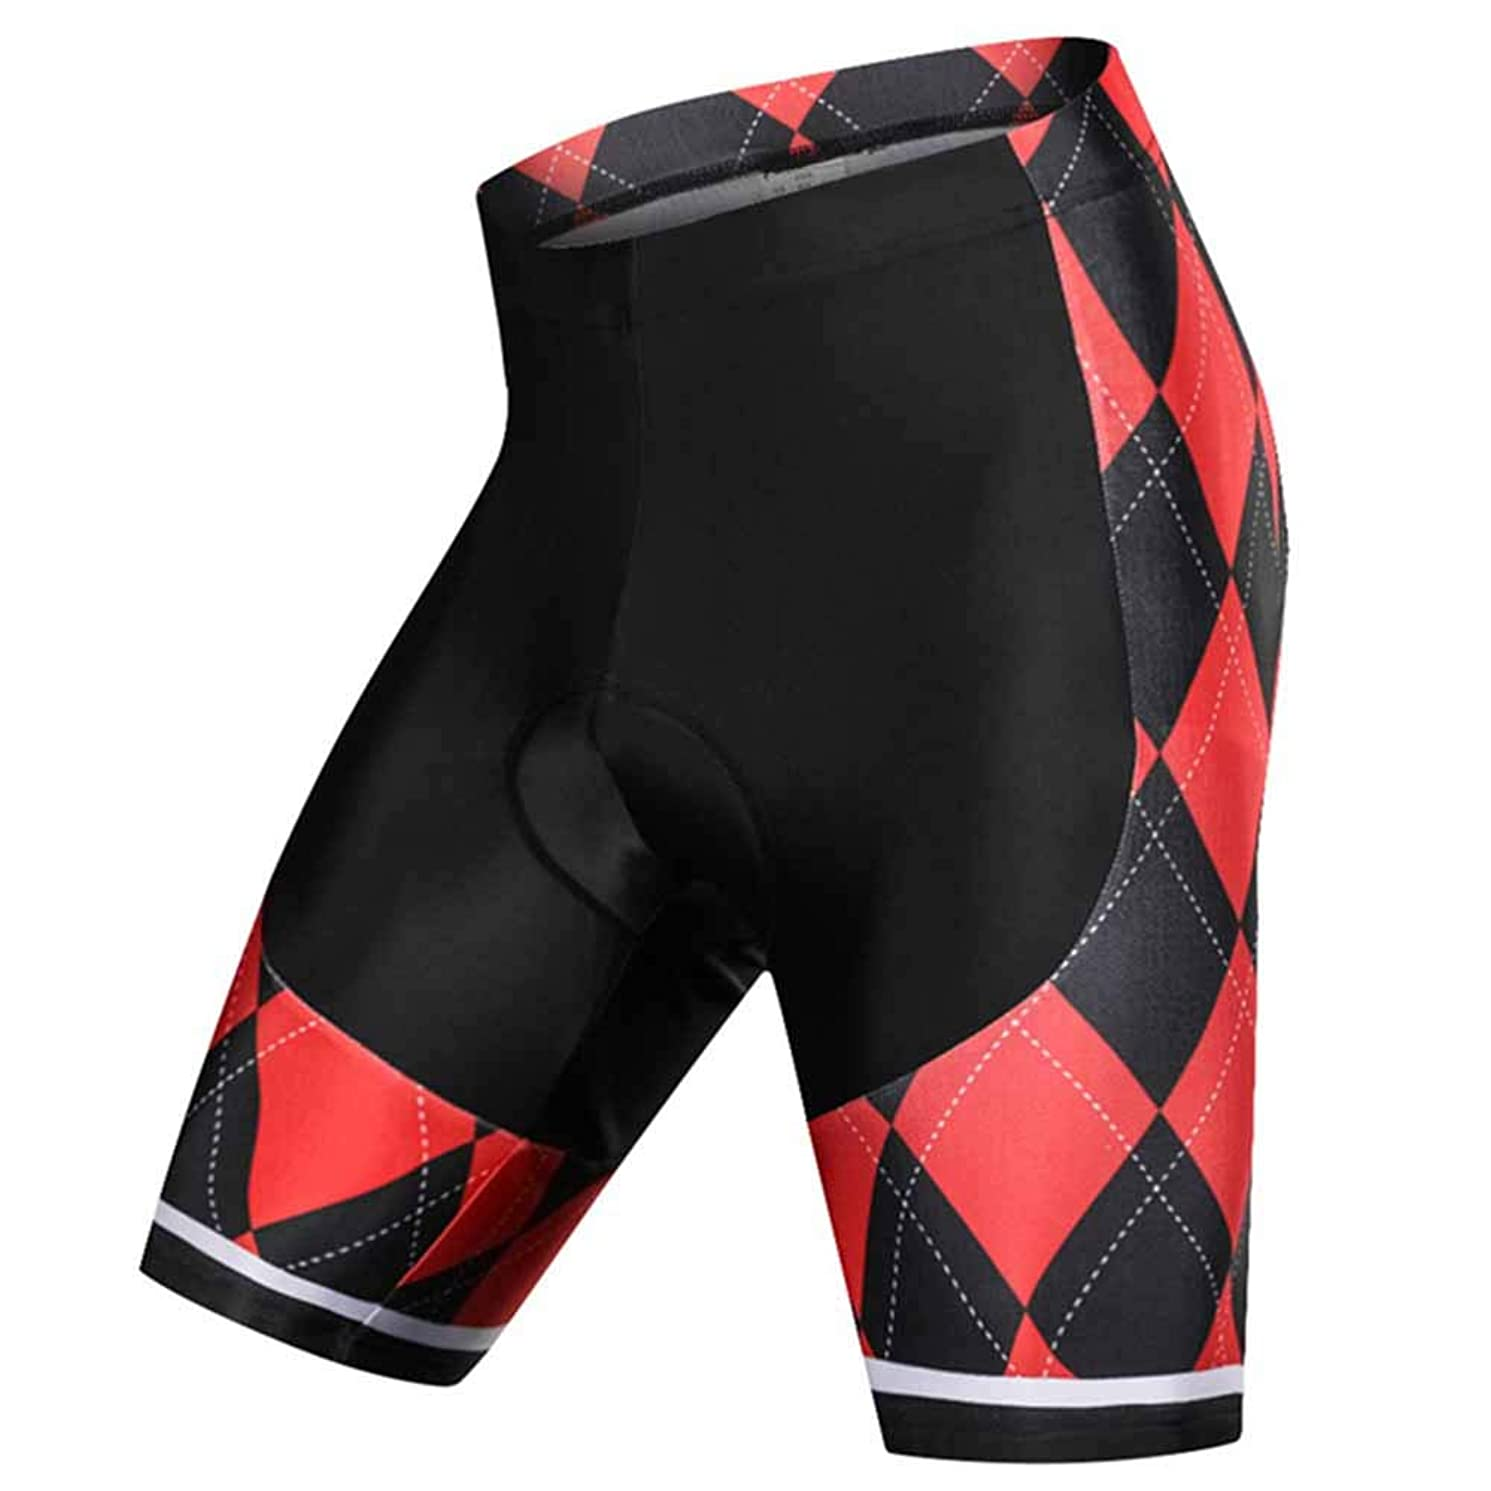 Mens Biking Shorts,Cycling Shorts Men Padded Underwear,Perspiration,Quick-Drying,Shockproof,Red,4D Gel Padding